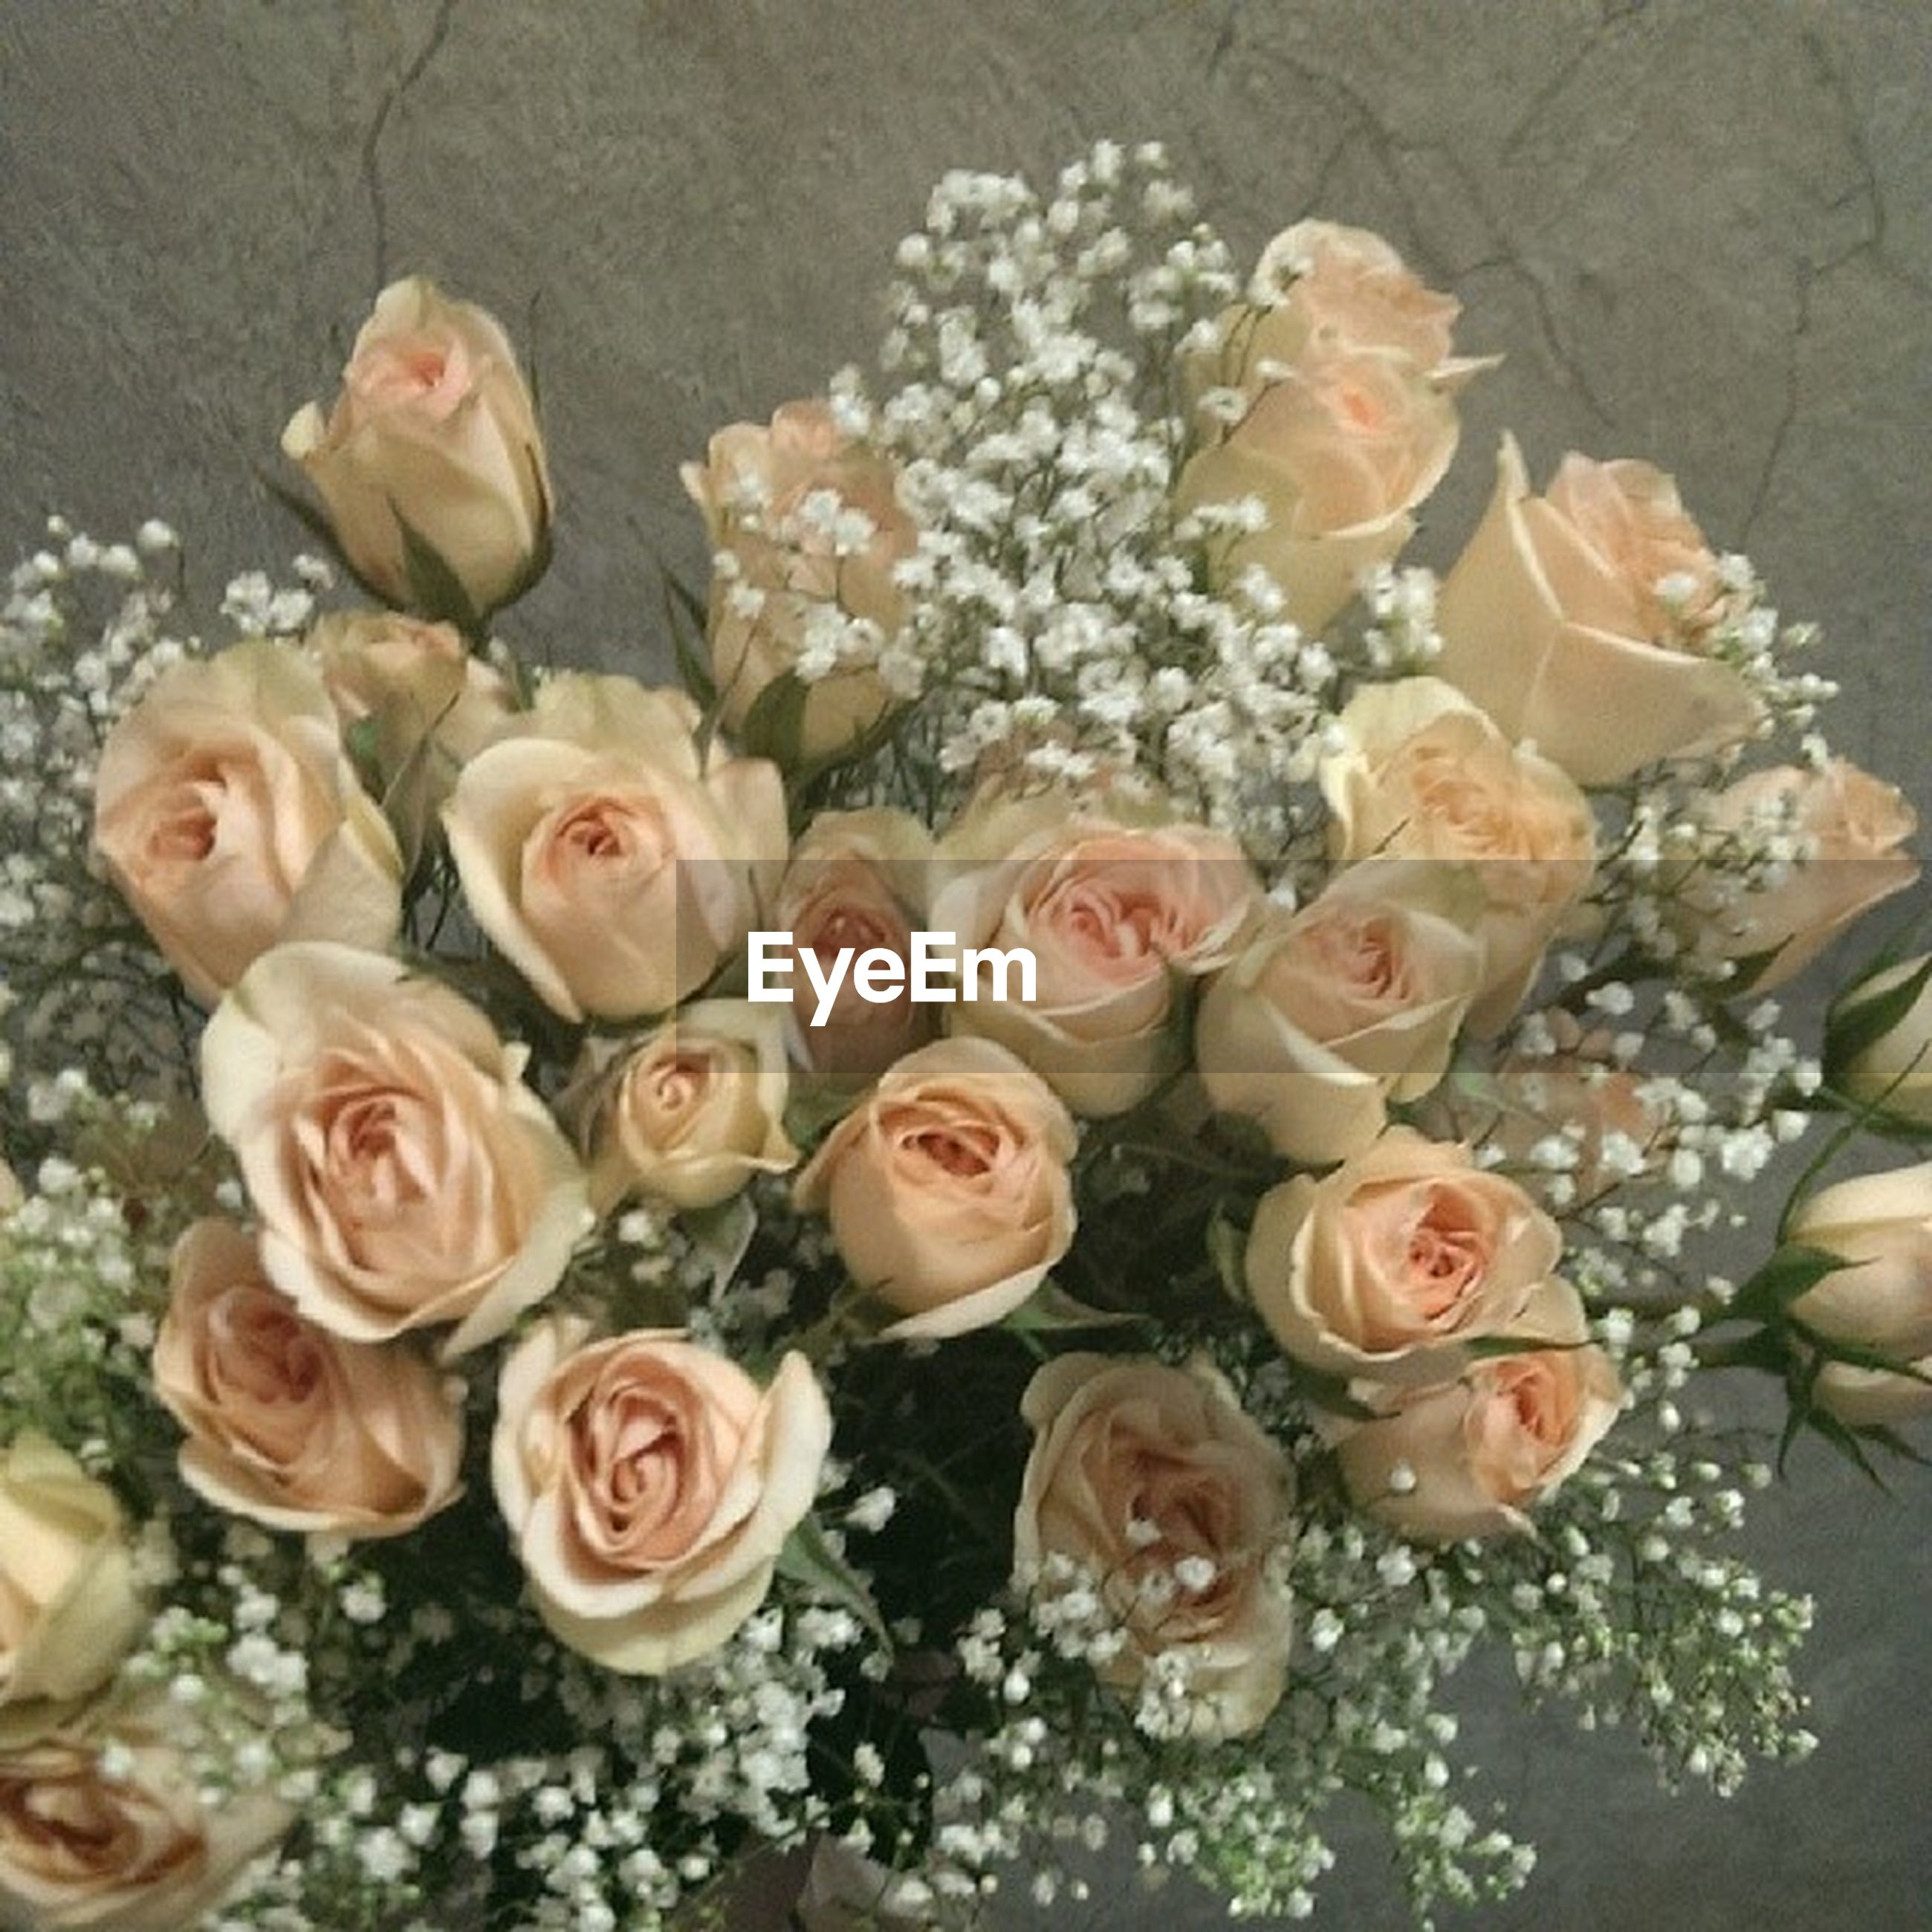 flower, indoors, freshness, petal, bouquet, fragility, high angle view, flower head, rose - flower, vase, bunch of flowers, flower arrangement, variation, decoration, table, still life, close-up, plant, beauty in nature, nature